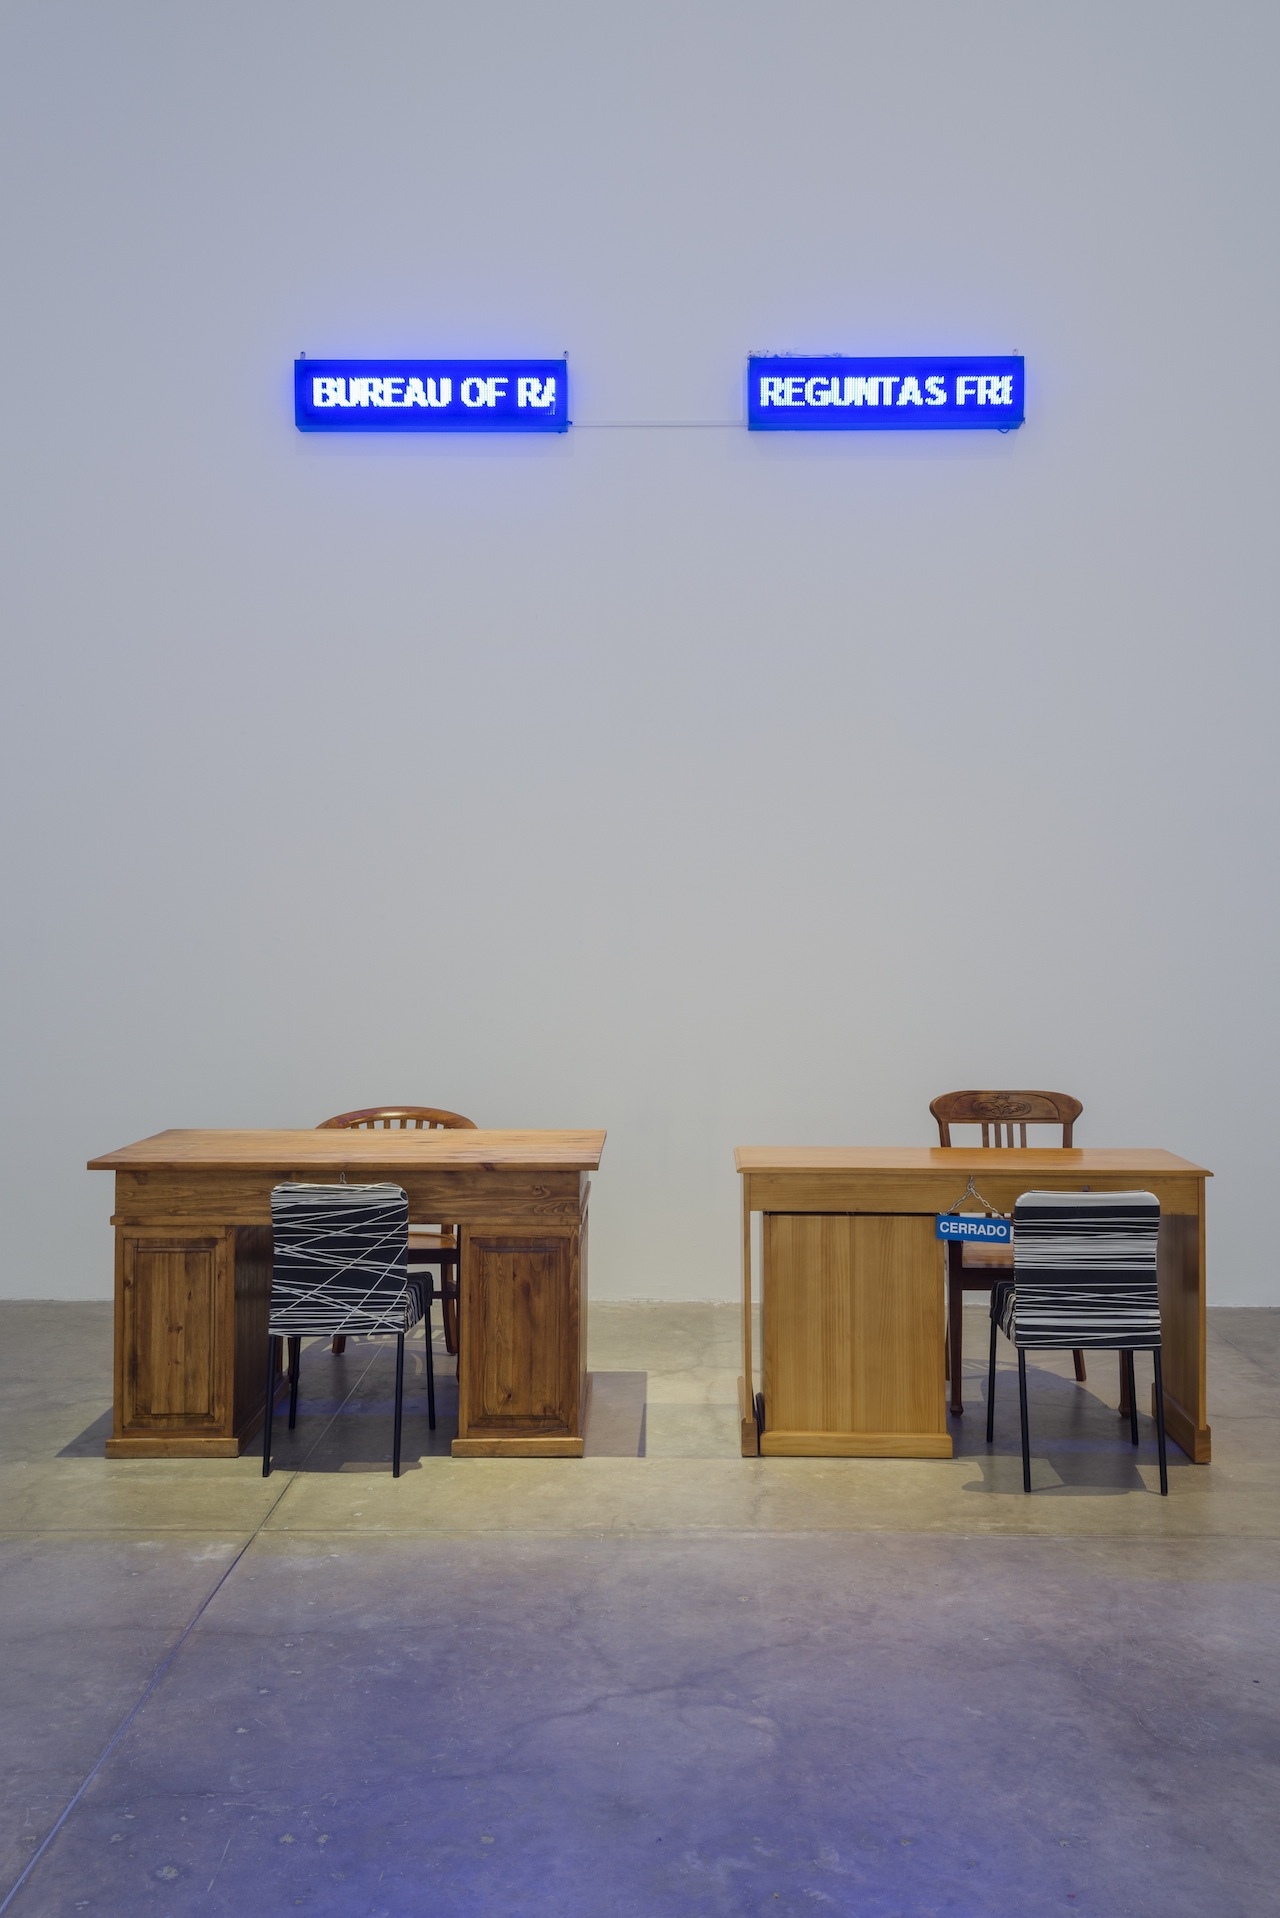 Work by Raqs Media Collective at MUAC (image courtesy MUAC) (click to enlarge)